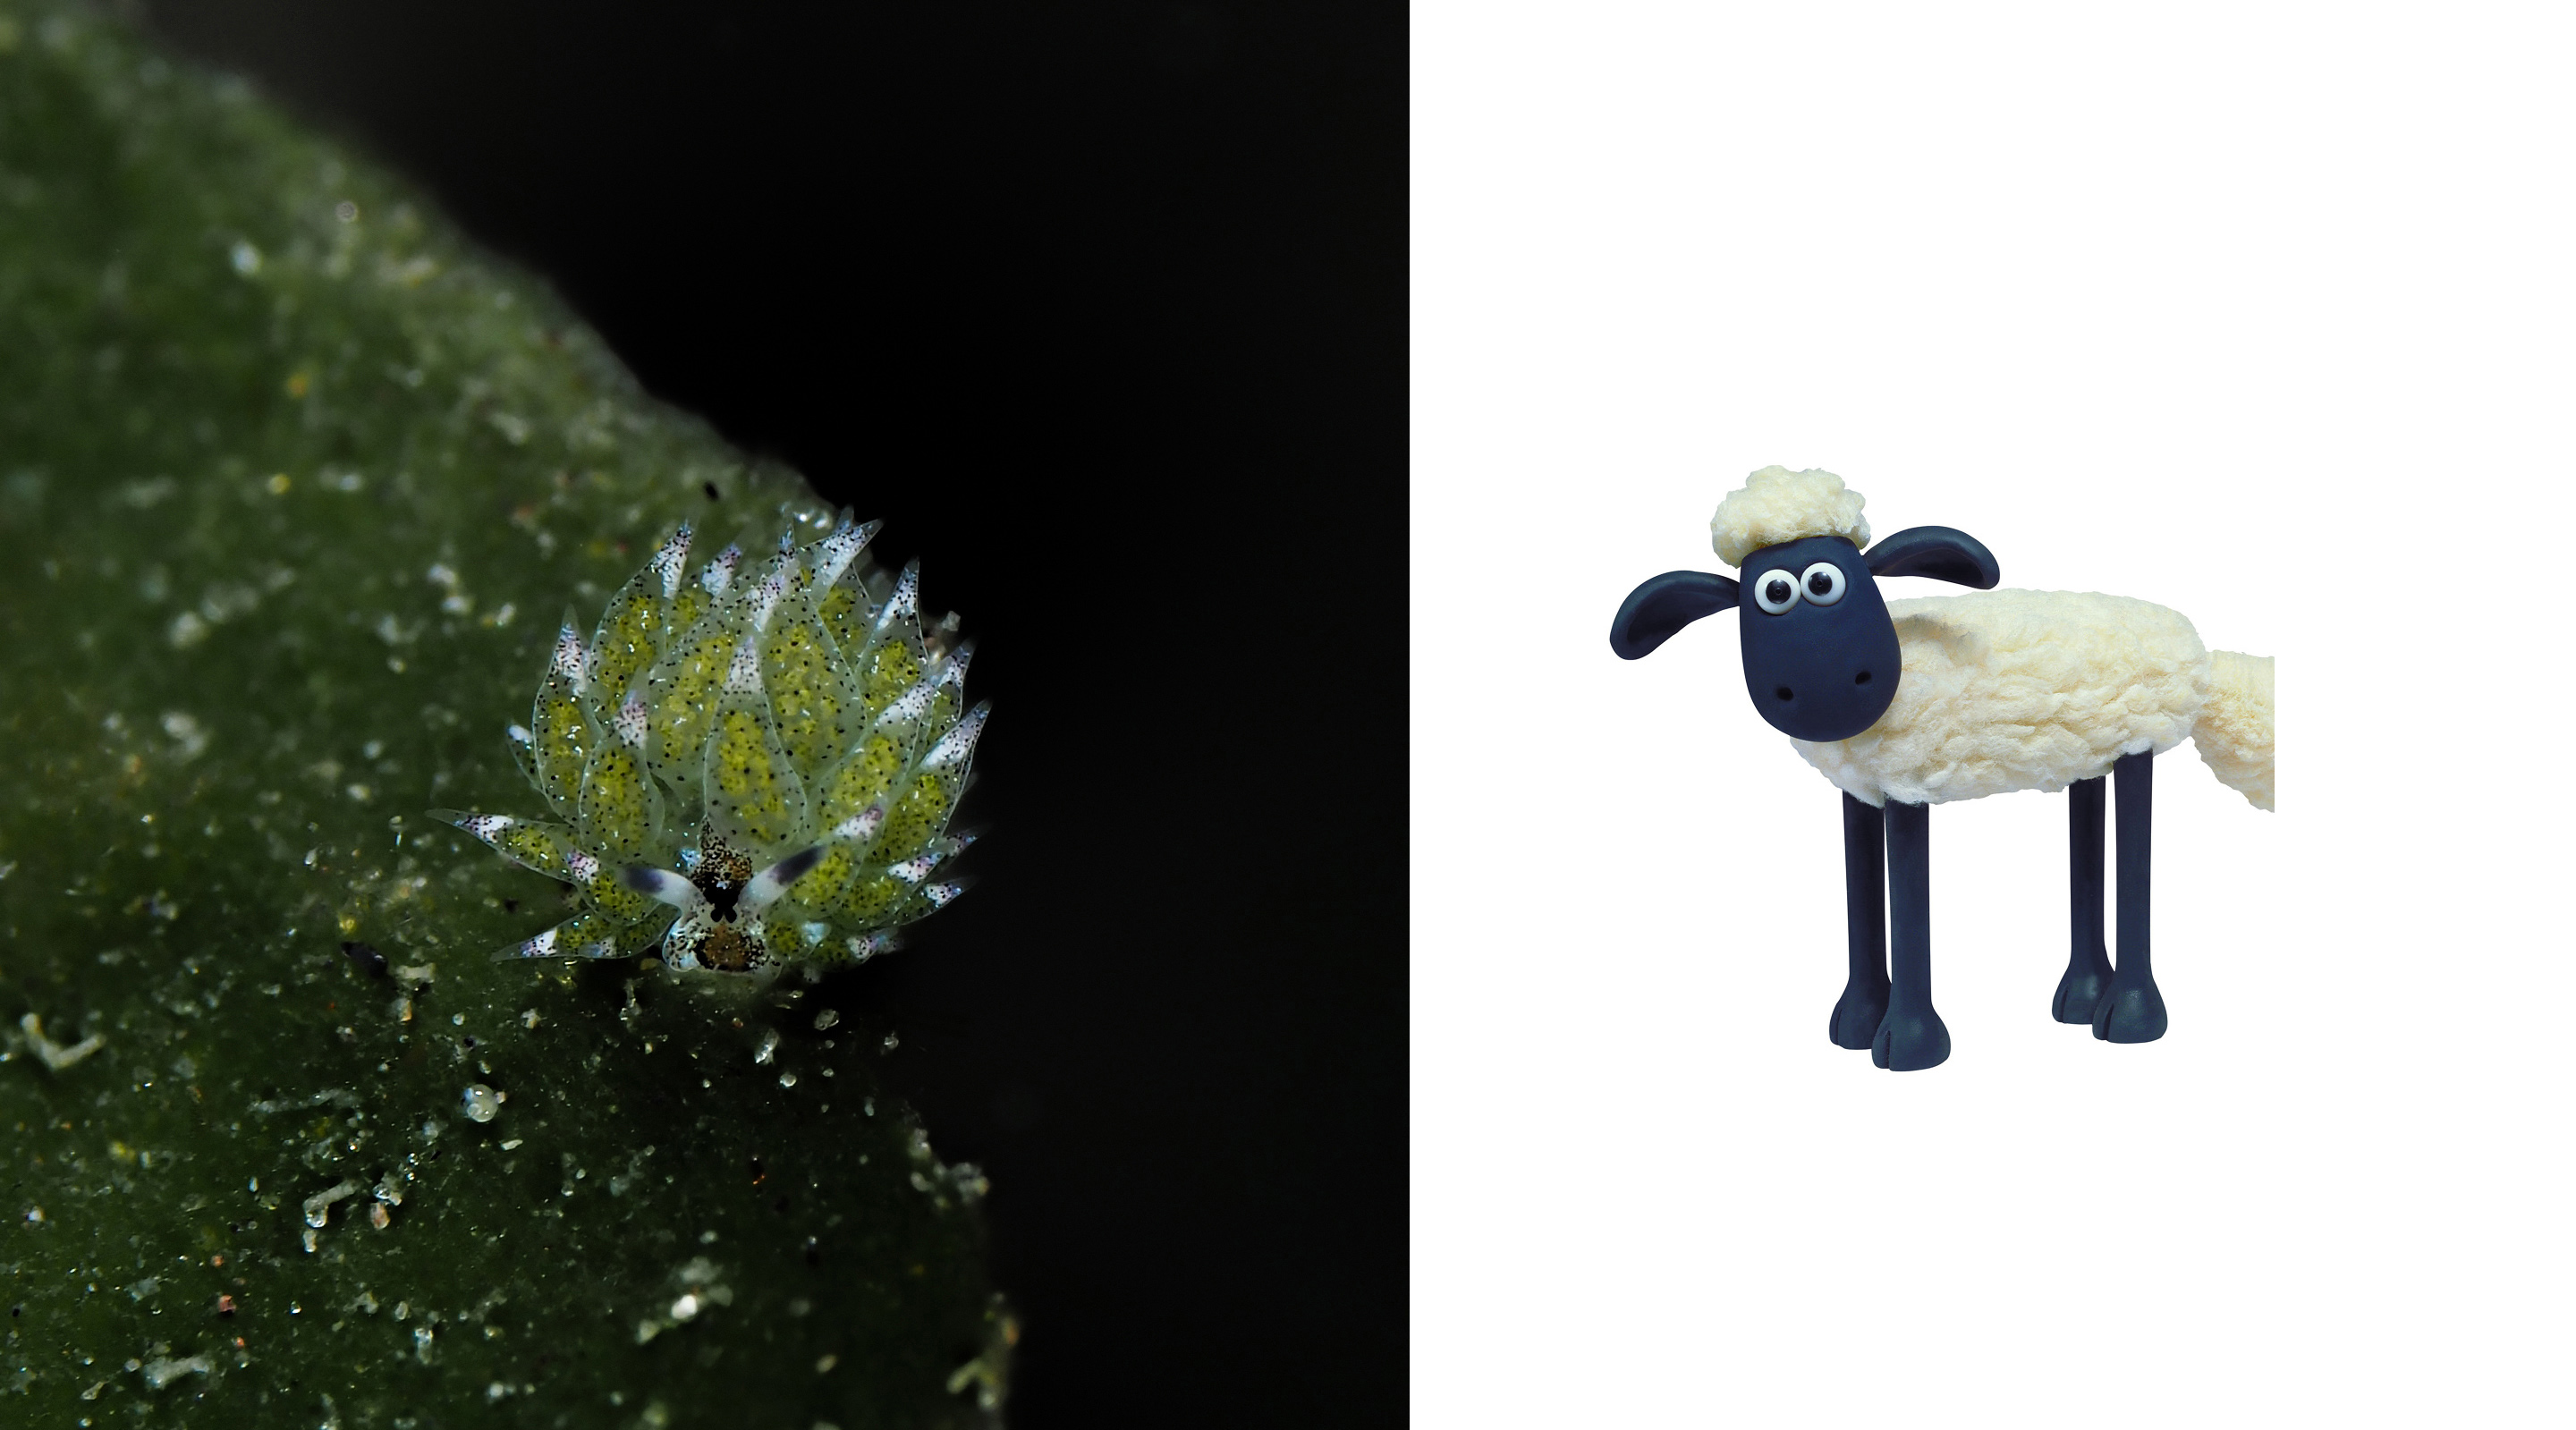 Shaun the Sheep – This one is self explanatory. Who knew we had little slugs in Dauin that not only graze like a sheep, but also resemble one of television's most famous sheep? Blog by Daniel Geary at Atmosphere Resort Philippines